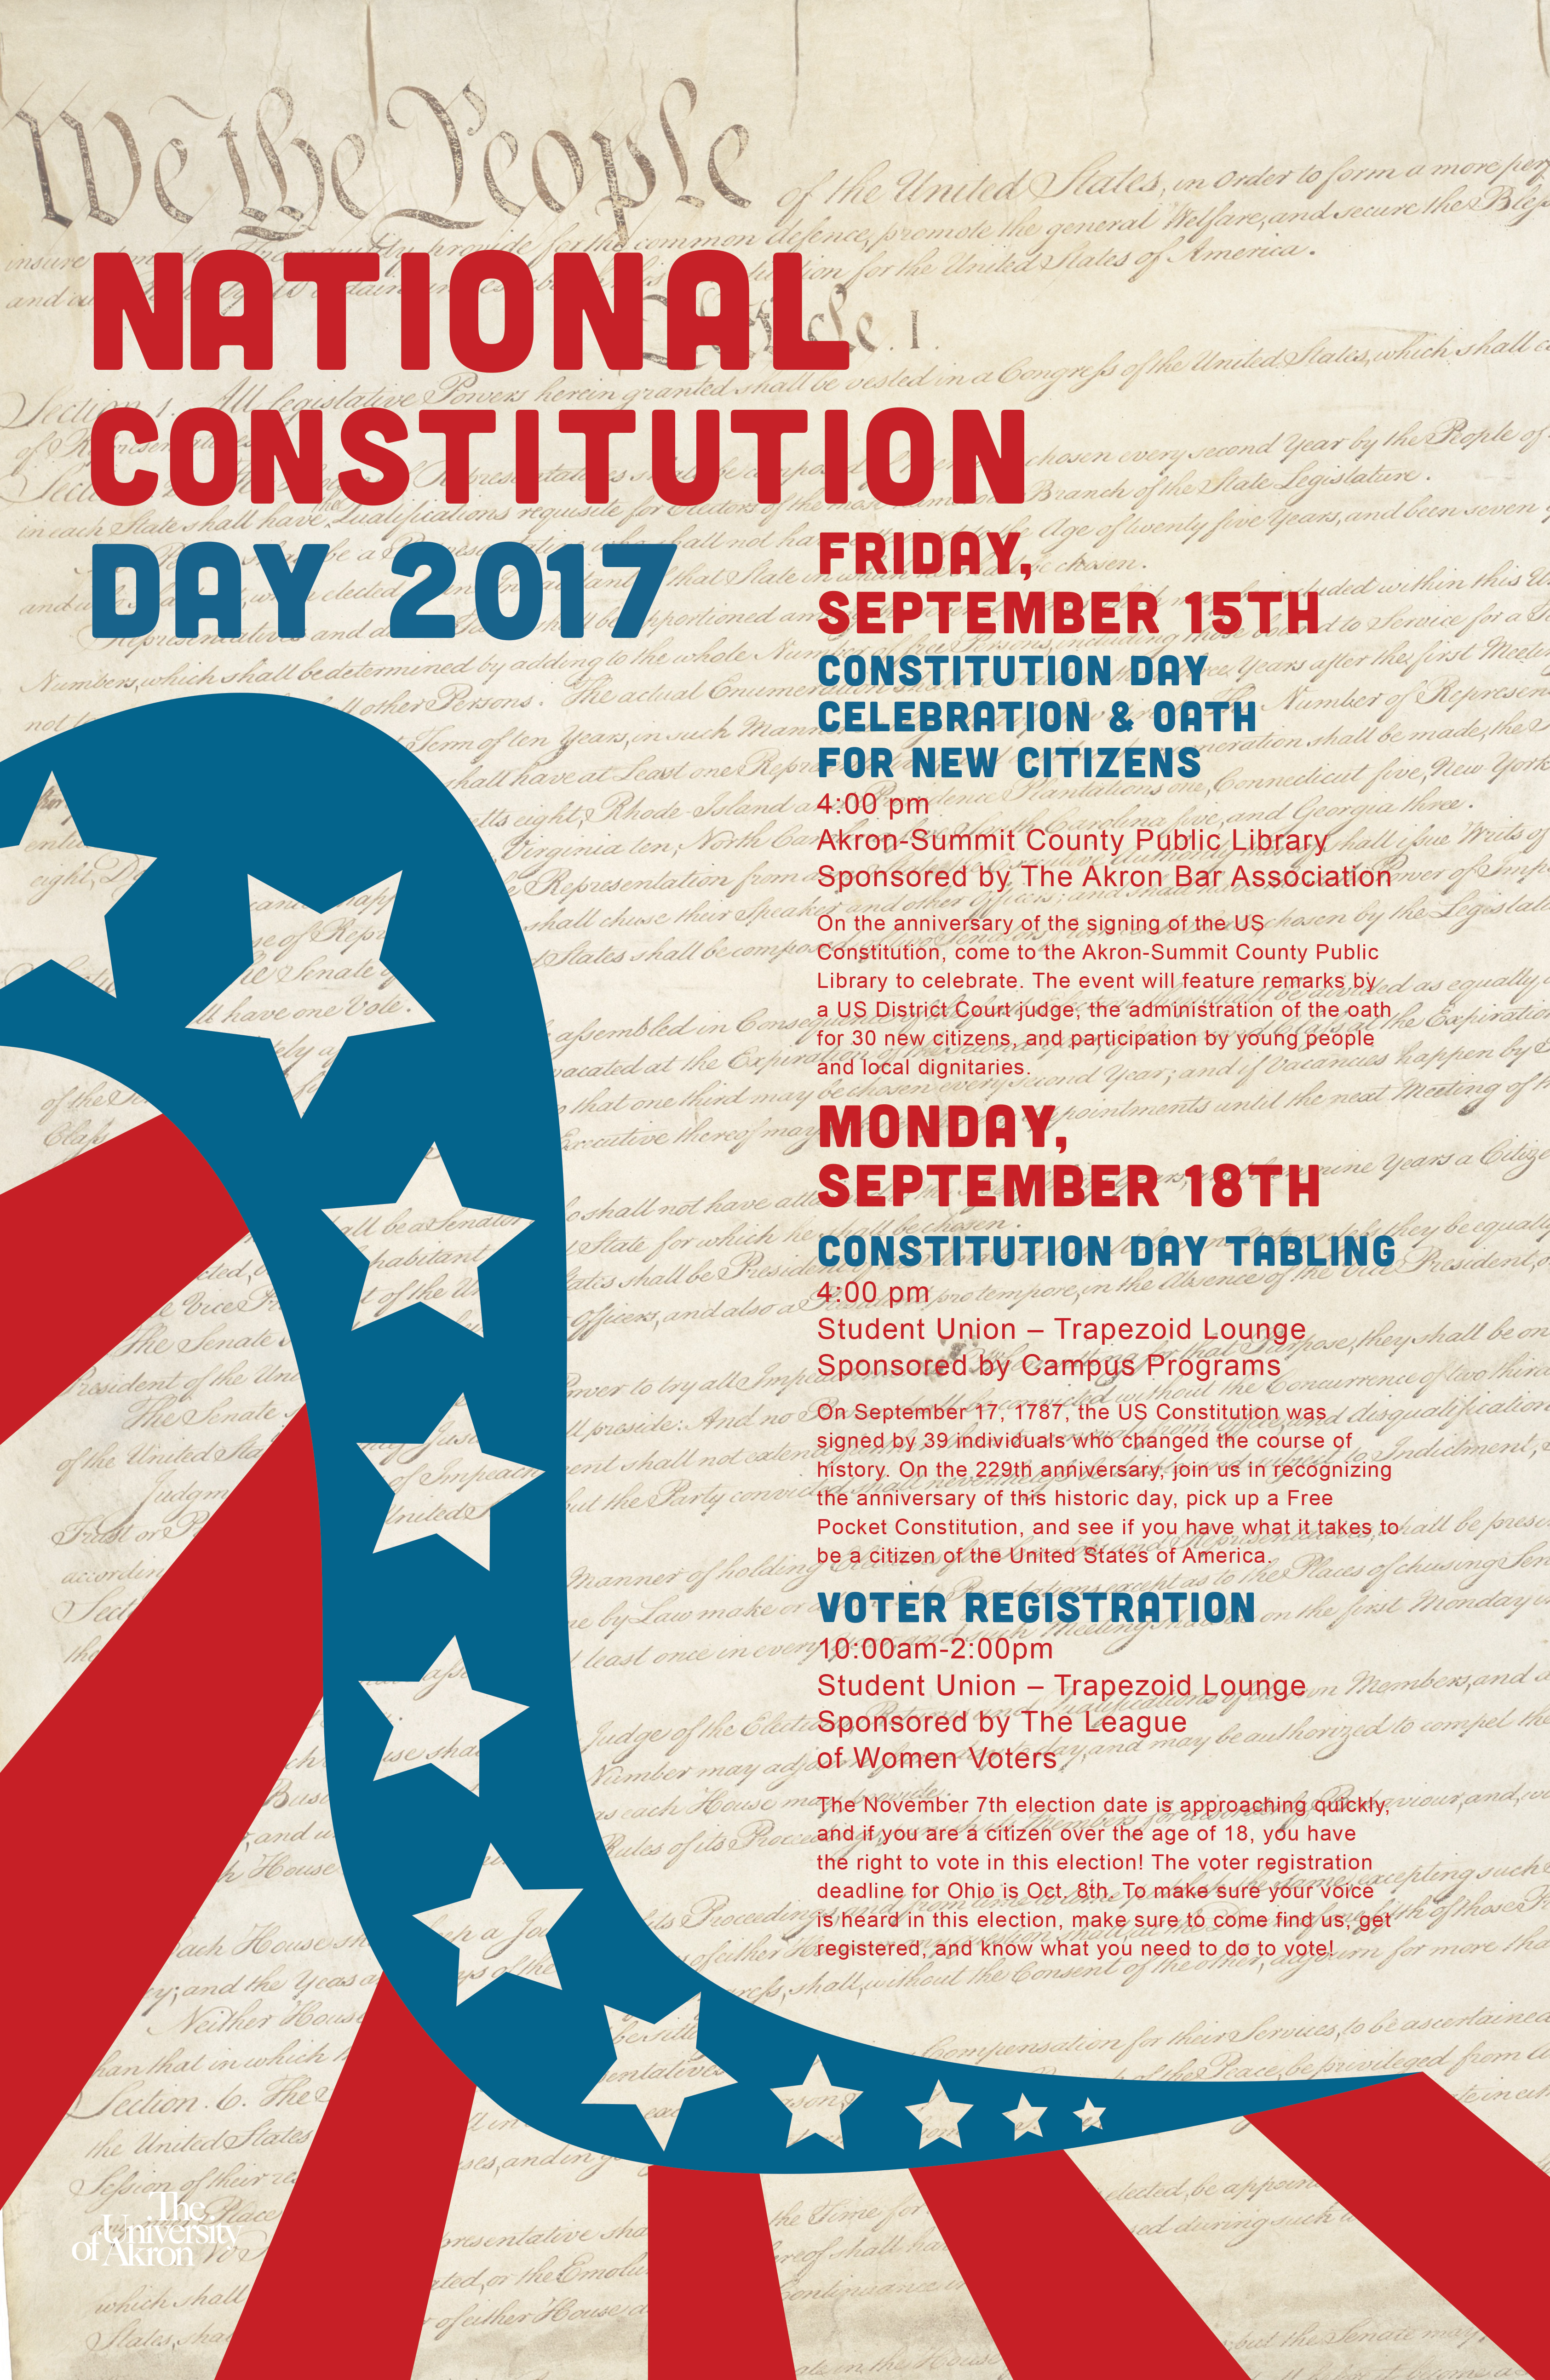 Comprehensive collection of constitutional materials including books articles and tools